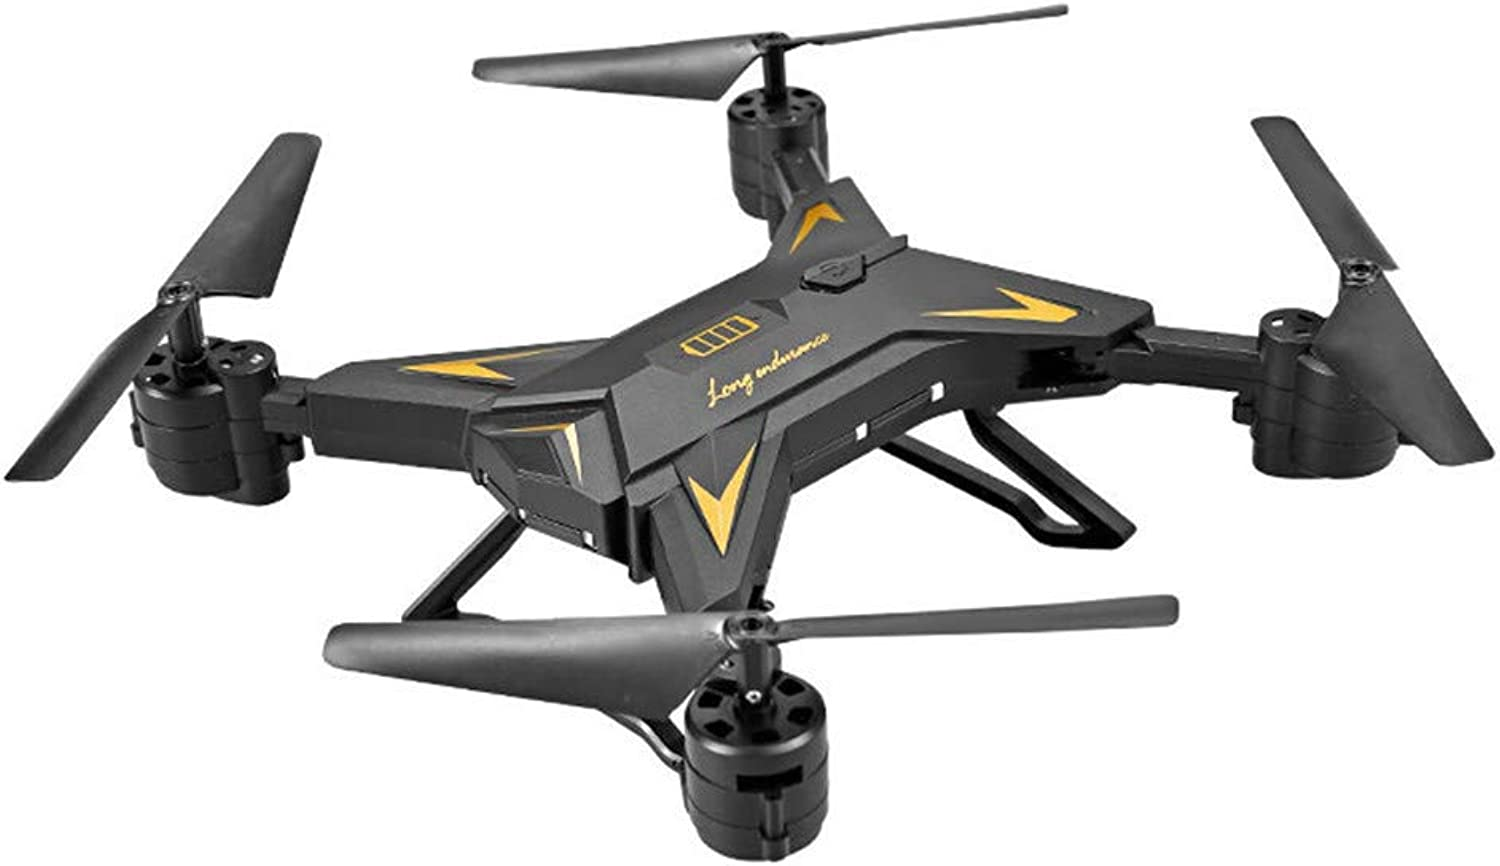 Toys Games Remote AppControlled Drones Mini RC Drone for Kids with for Beginners Drone,Black,Ordinary